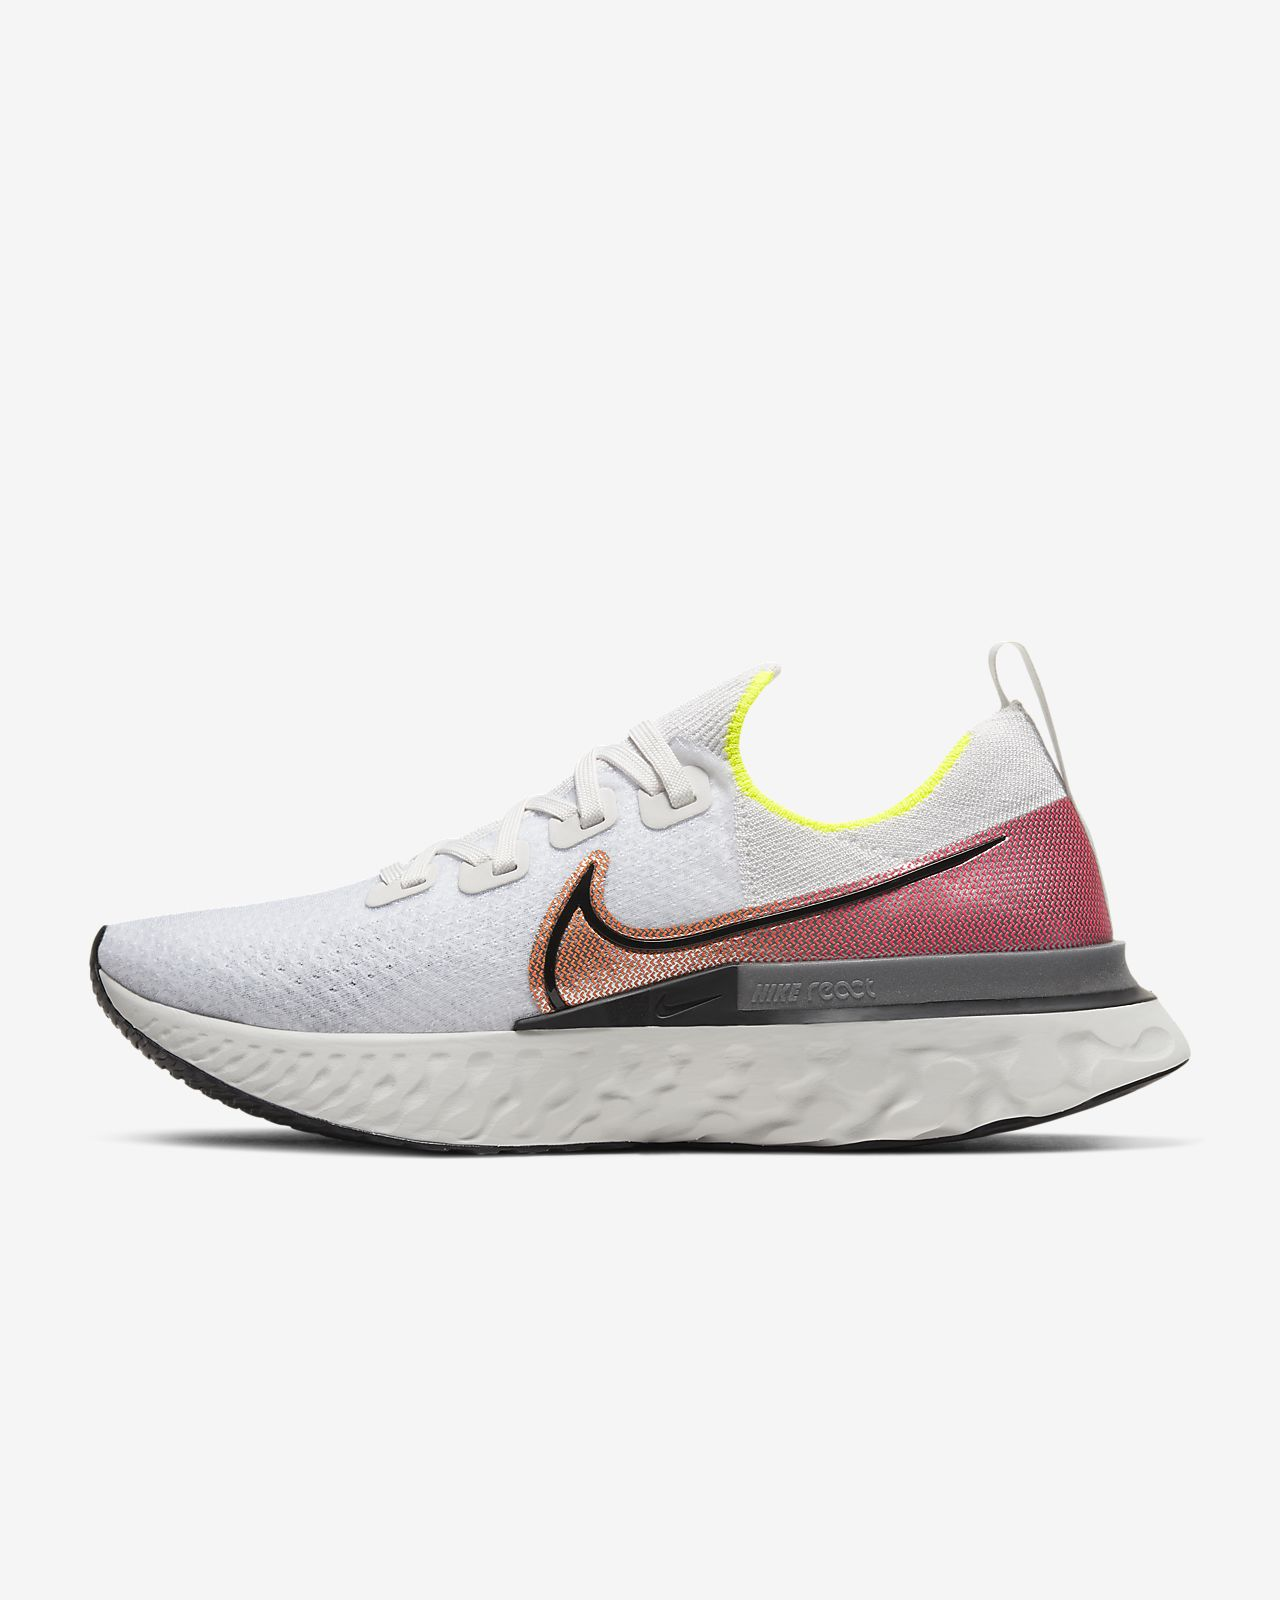 new lower prices details for new lifestyle Nike React Infinity Run Flyknit Men's Running Shoe. Nike GB